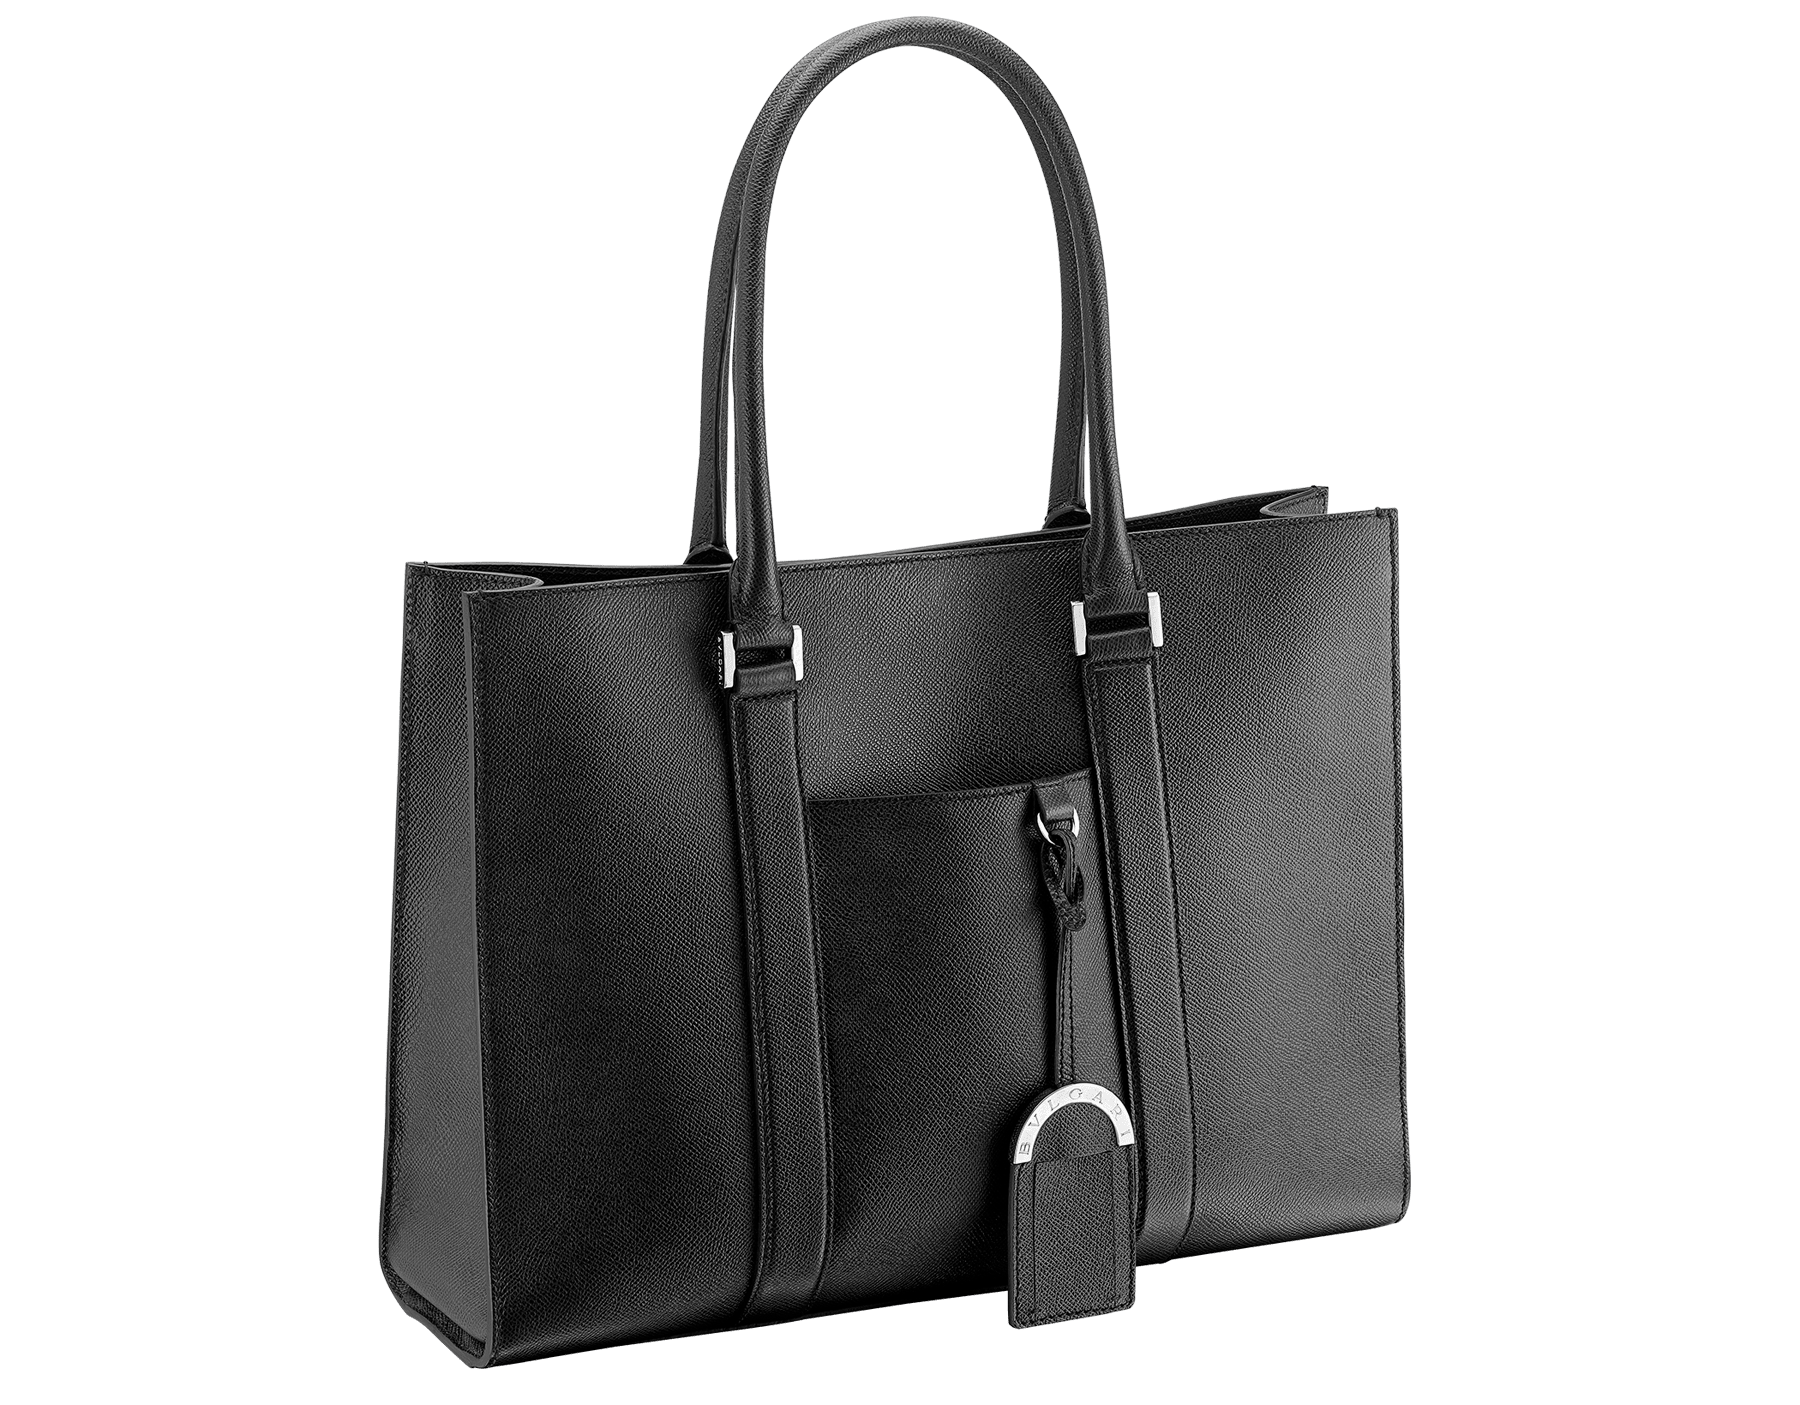 Tote bag in black grain calf leather with brass palladium plated hardware. One zipped pocket, three open pockets and Bulgari logo metal tag inside. Iconic detachable label tag. Also available in other colours. 37625 image 1